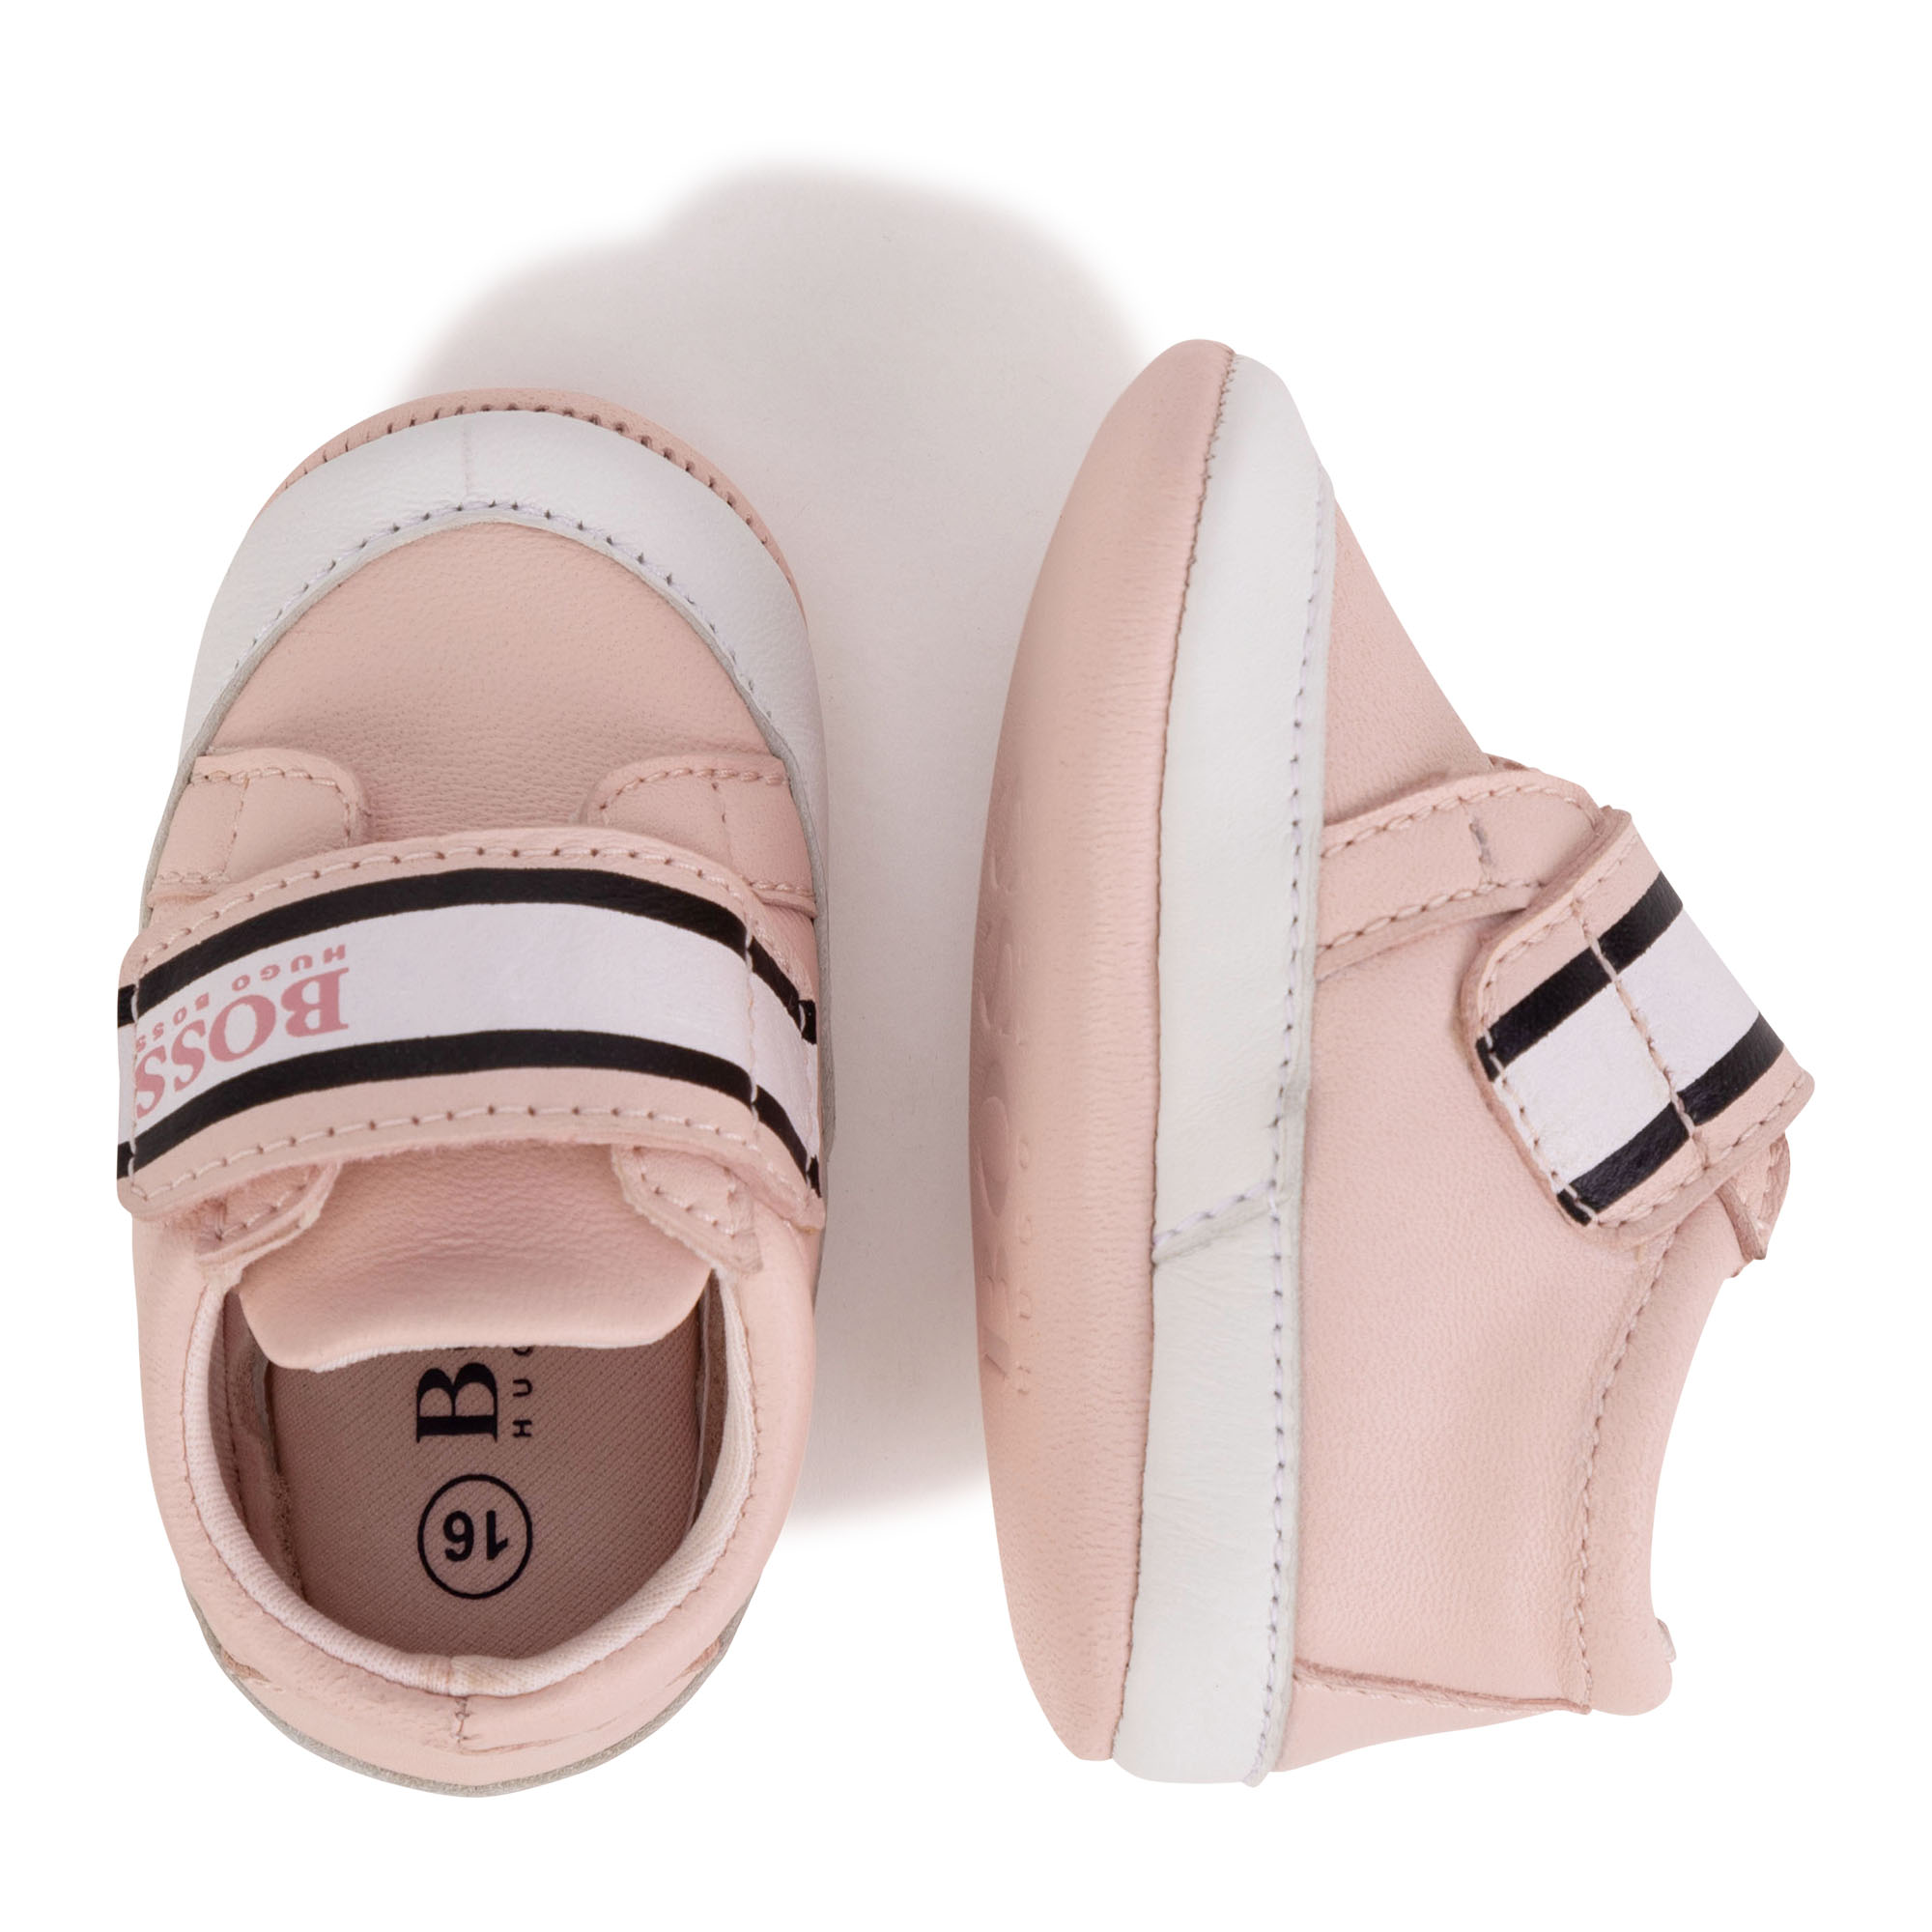 Leather baby shoes with hook and loop fastening BOSS for GIRL